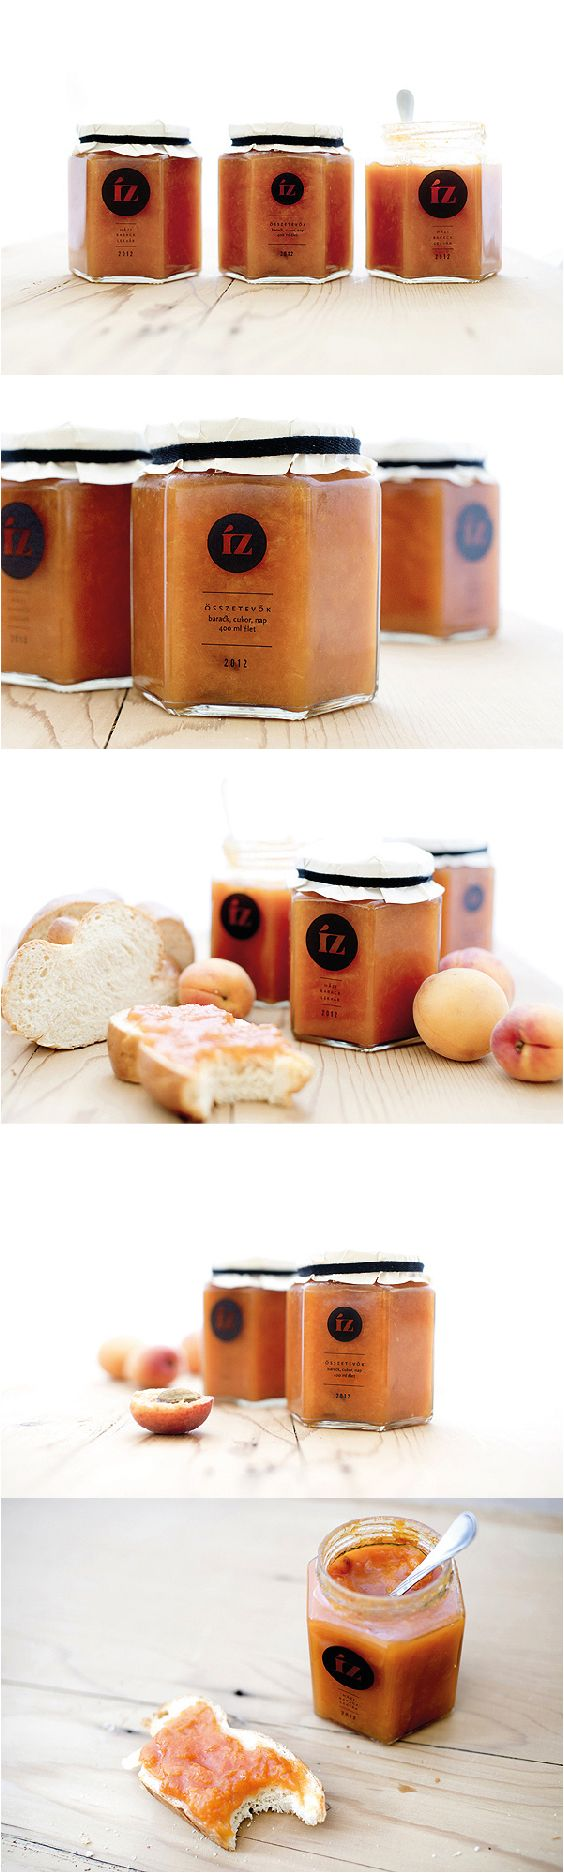 Pin by alden chong on food packaging worth admiring group board pin